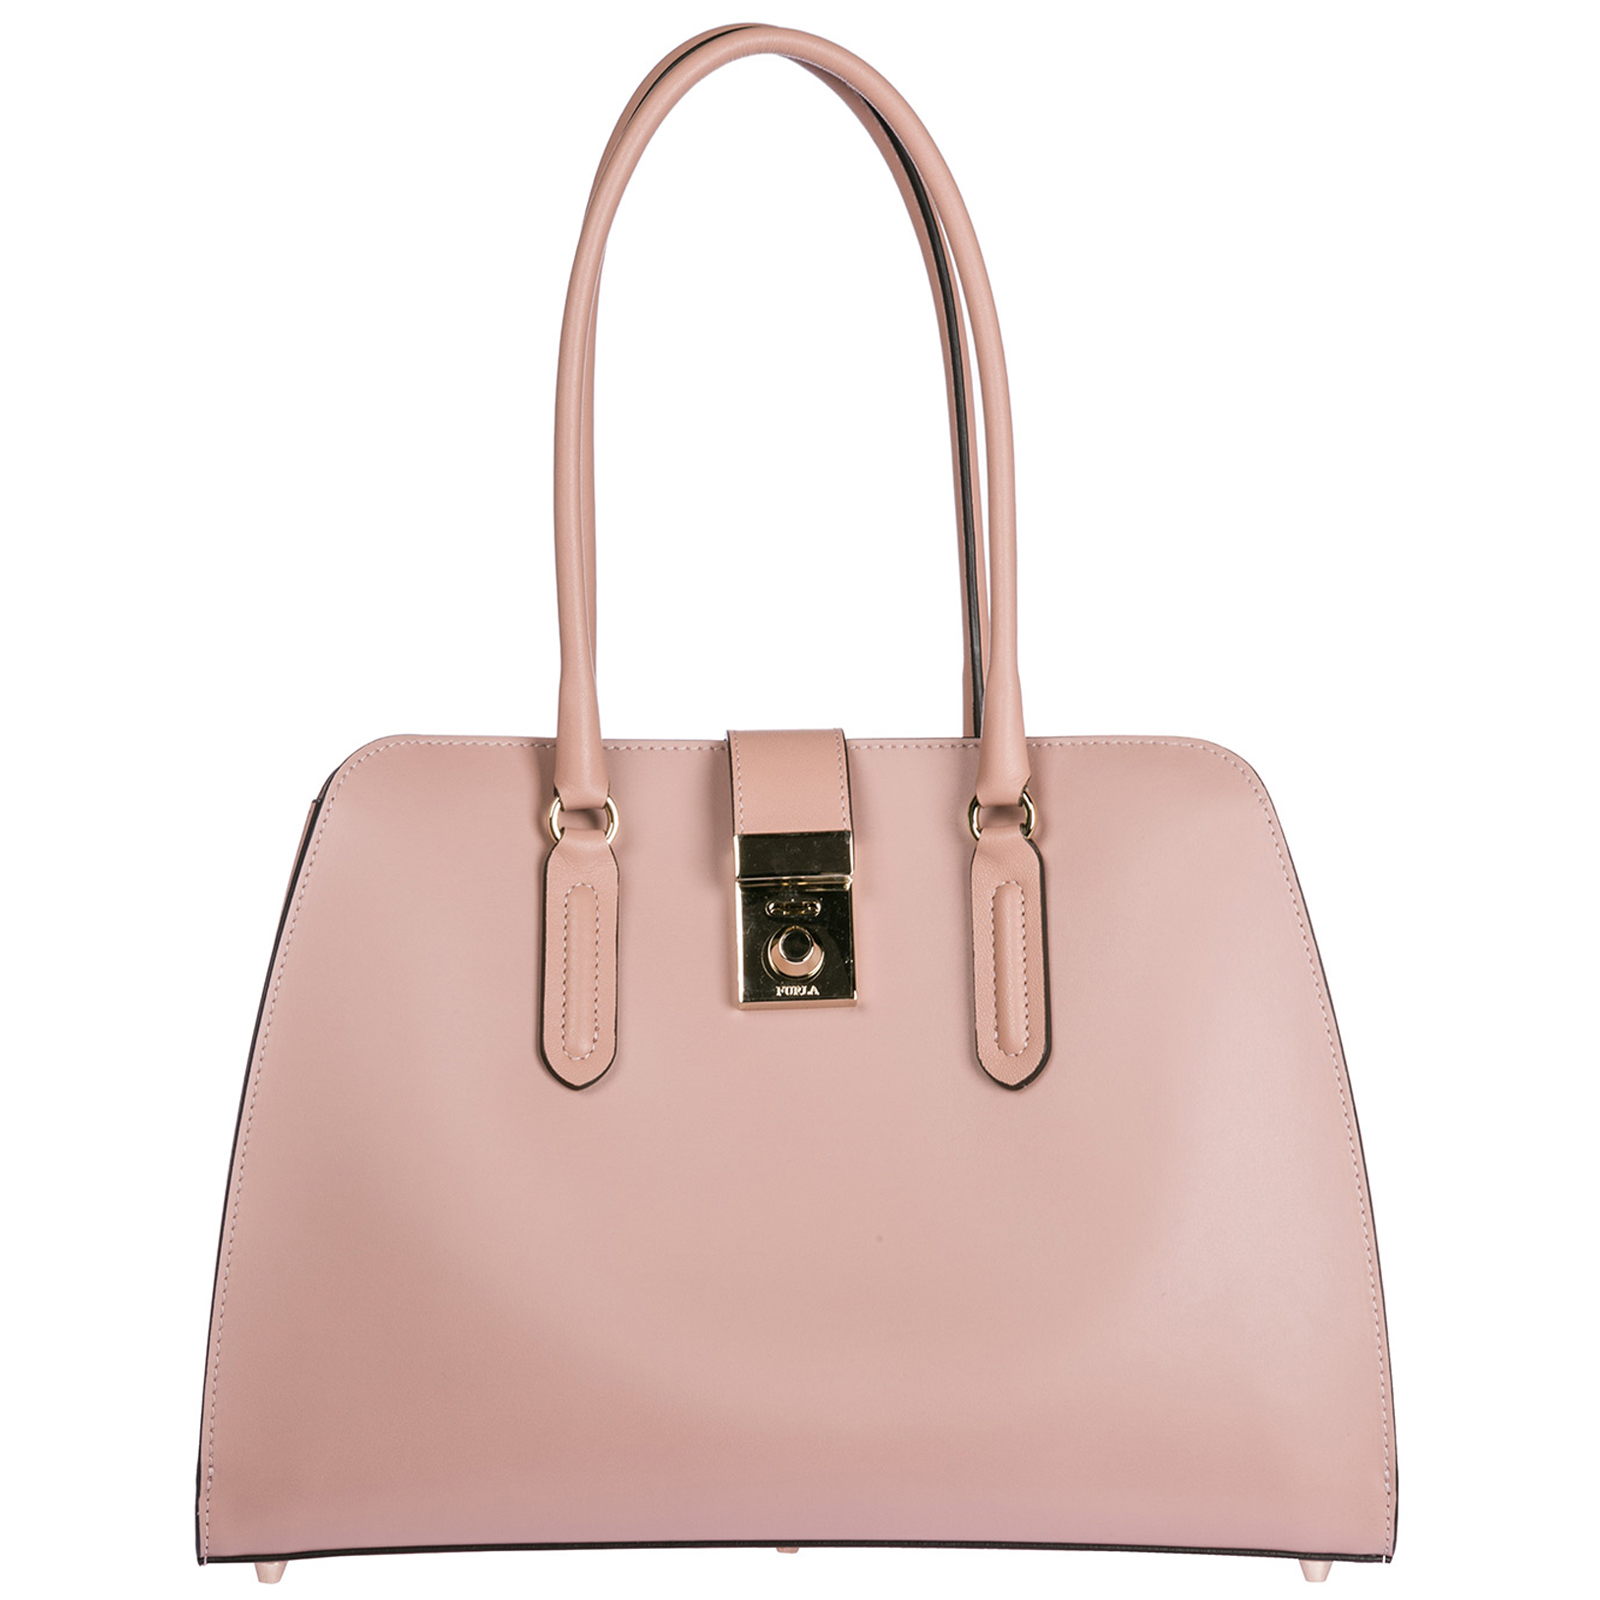 82401250bc1a Shoulder bag Furla Milano 886560 moonstone